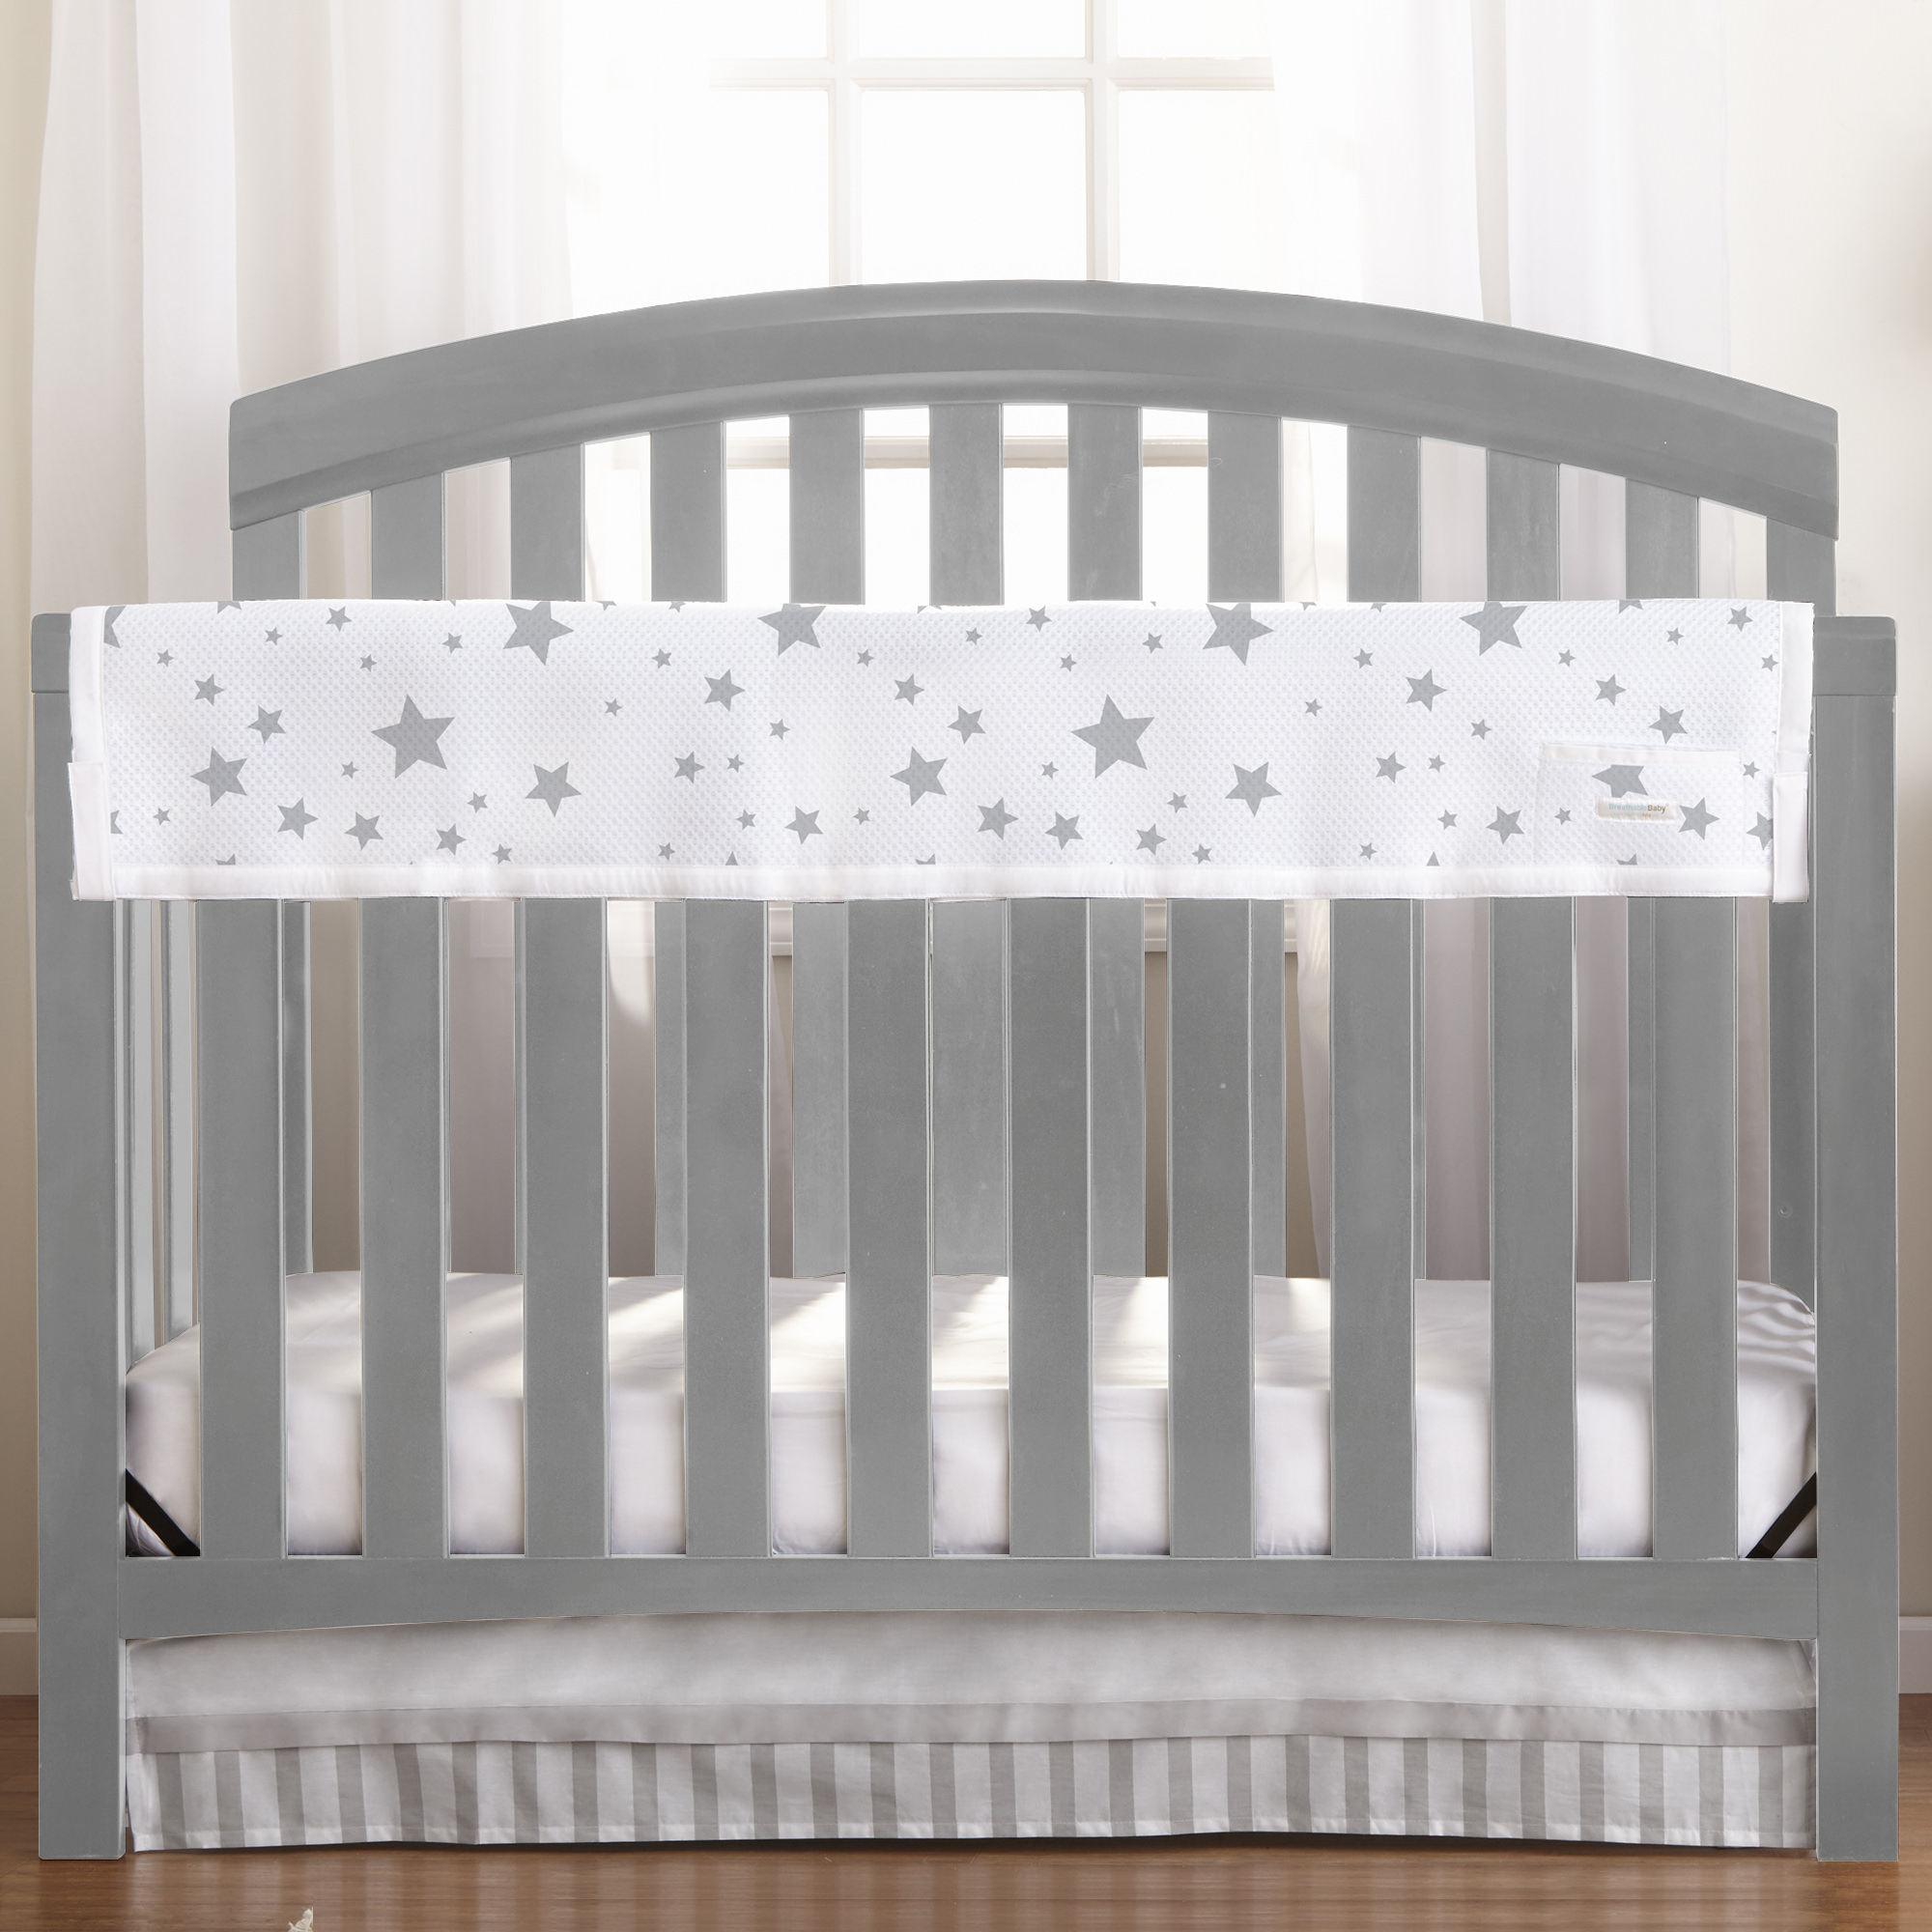 RailGuard Crib Rail Cover- Starlight